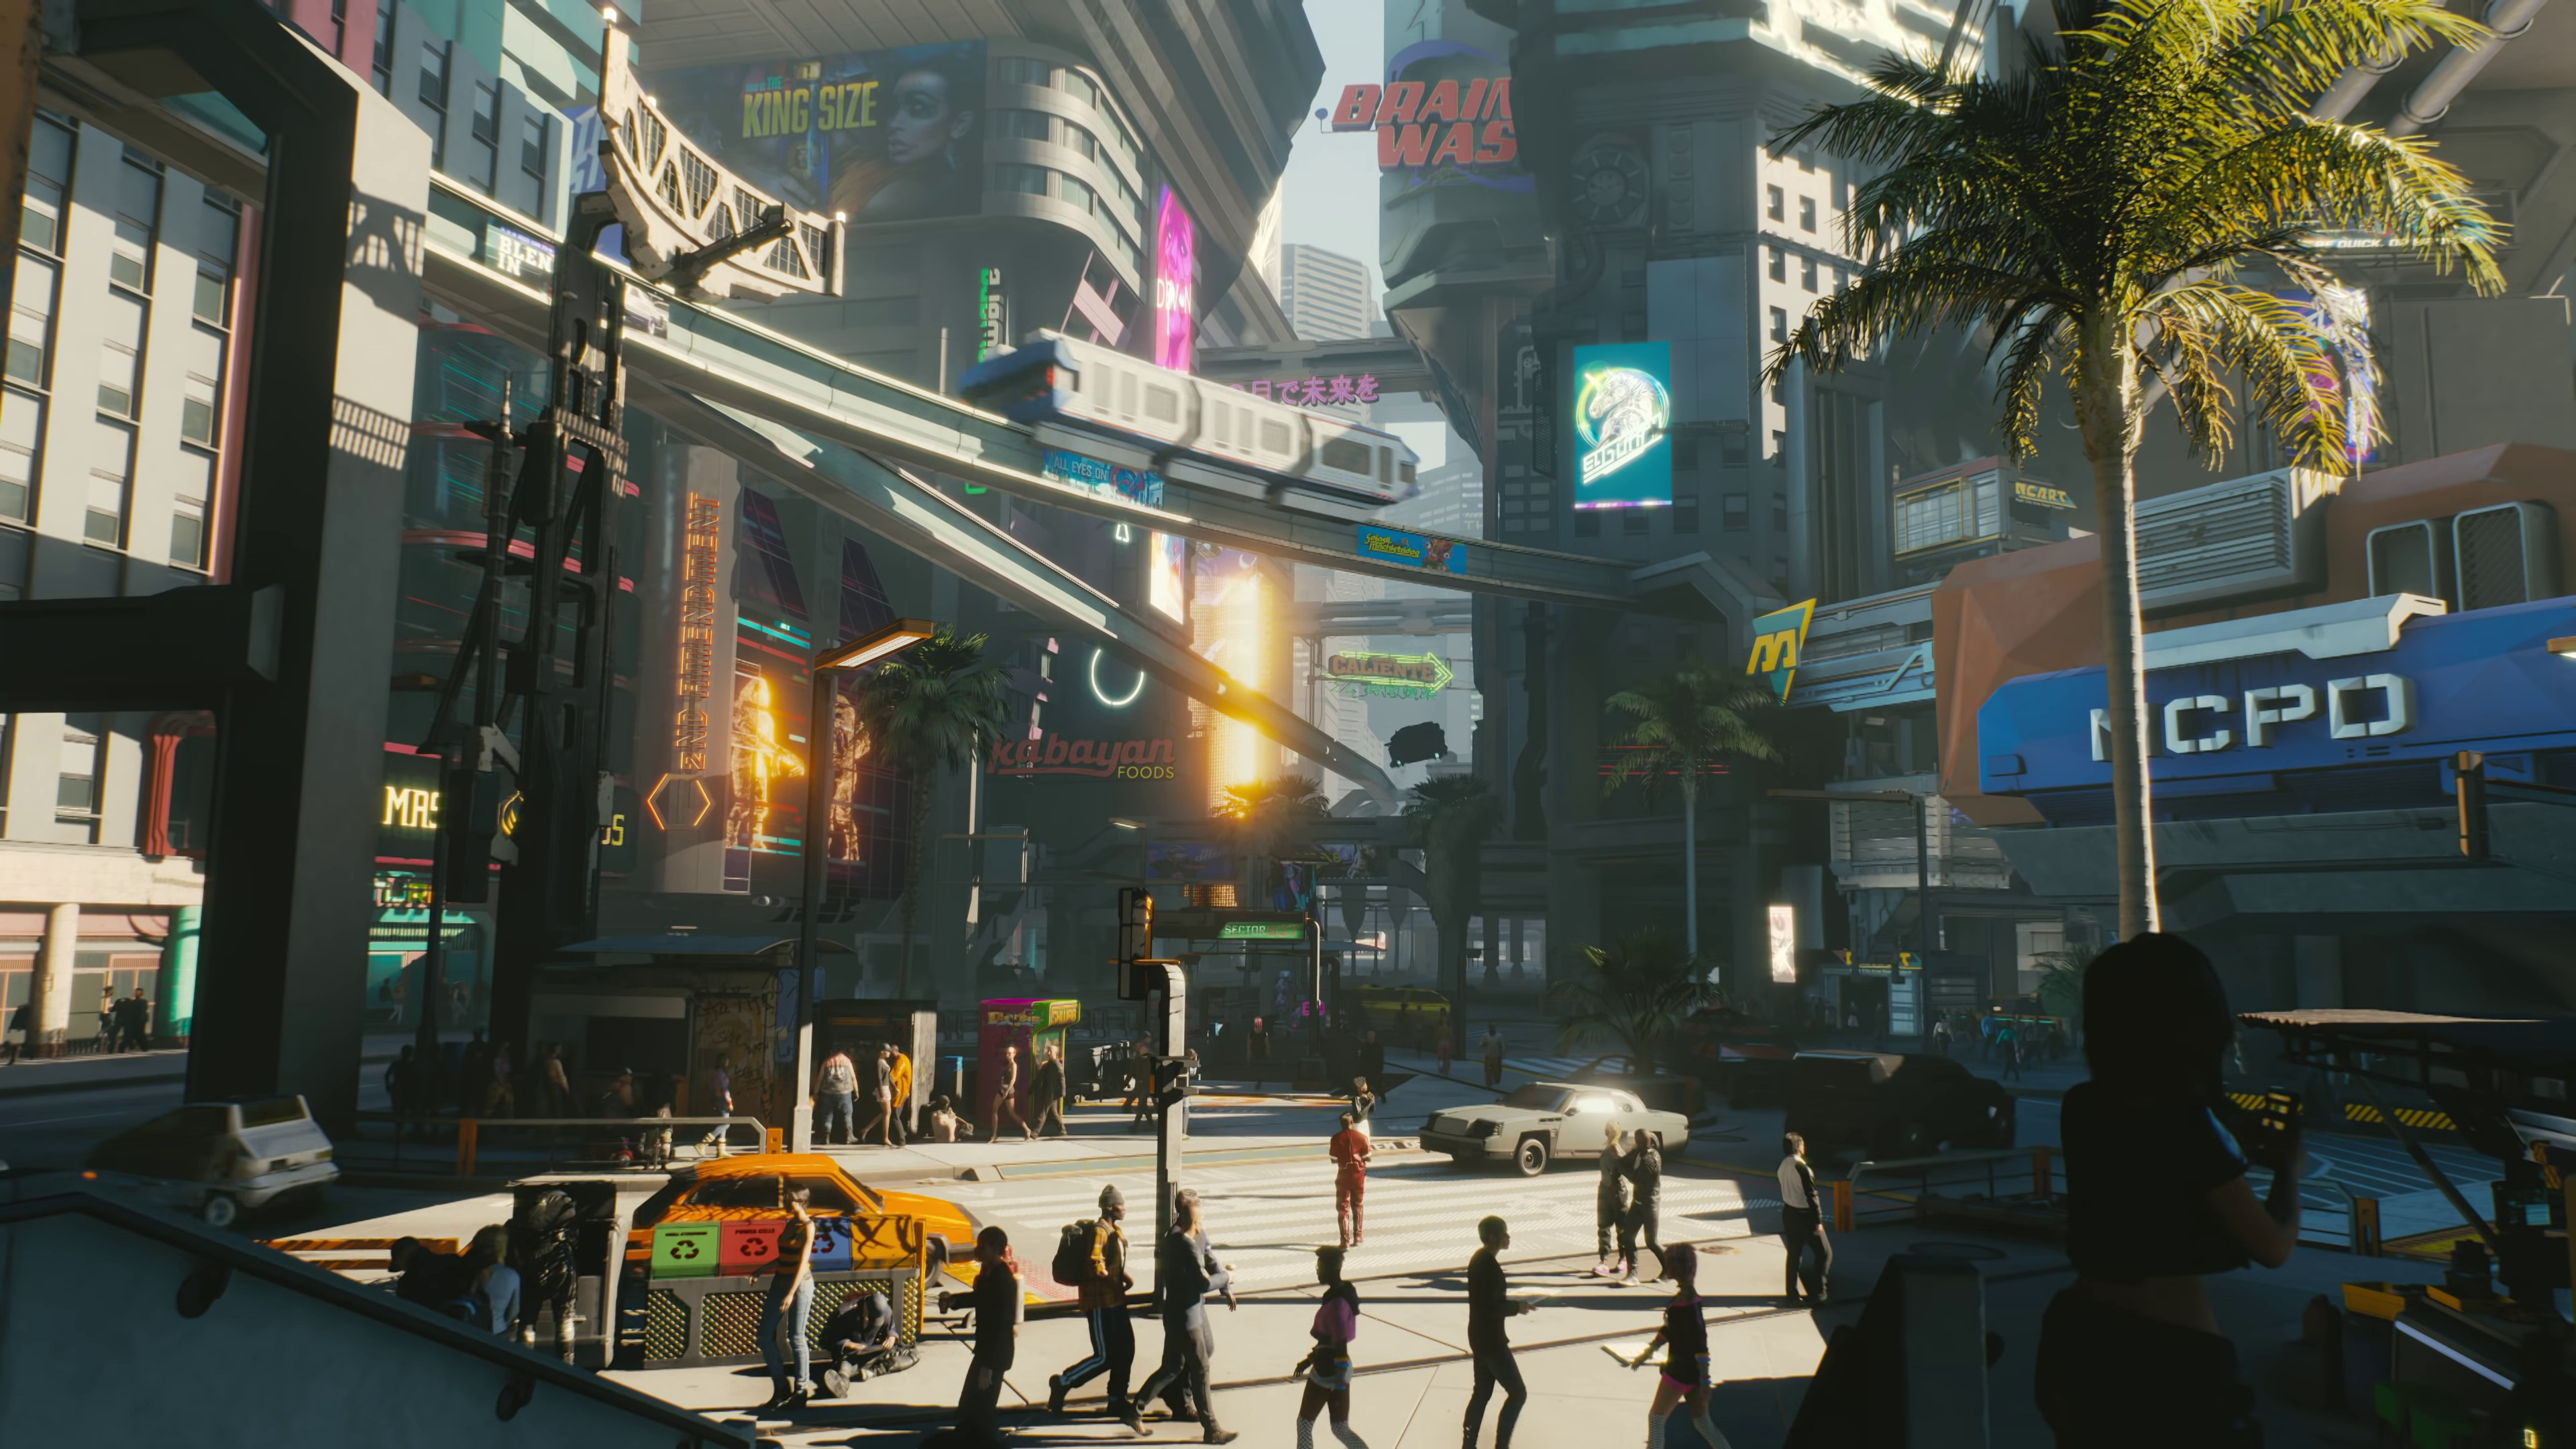 Cyberpunk 2077 scenes Wallpaper Download   High Resolution 4K 3840x2160